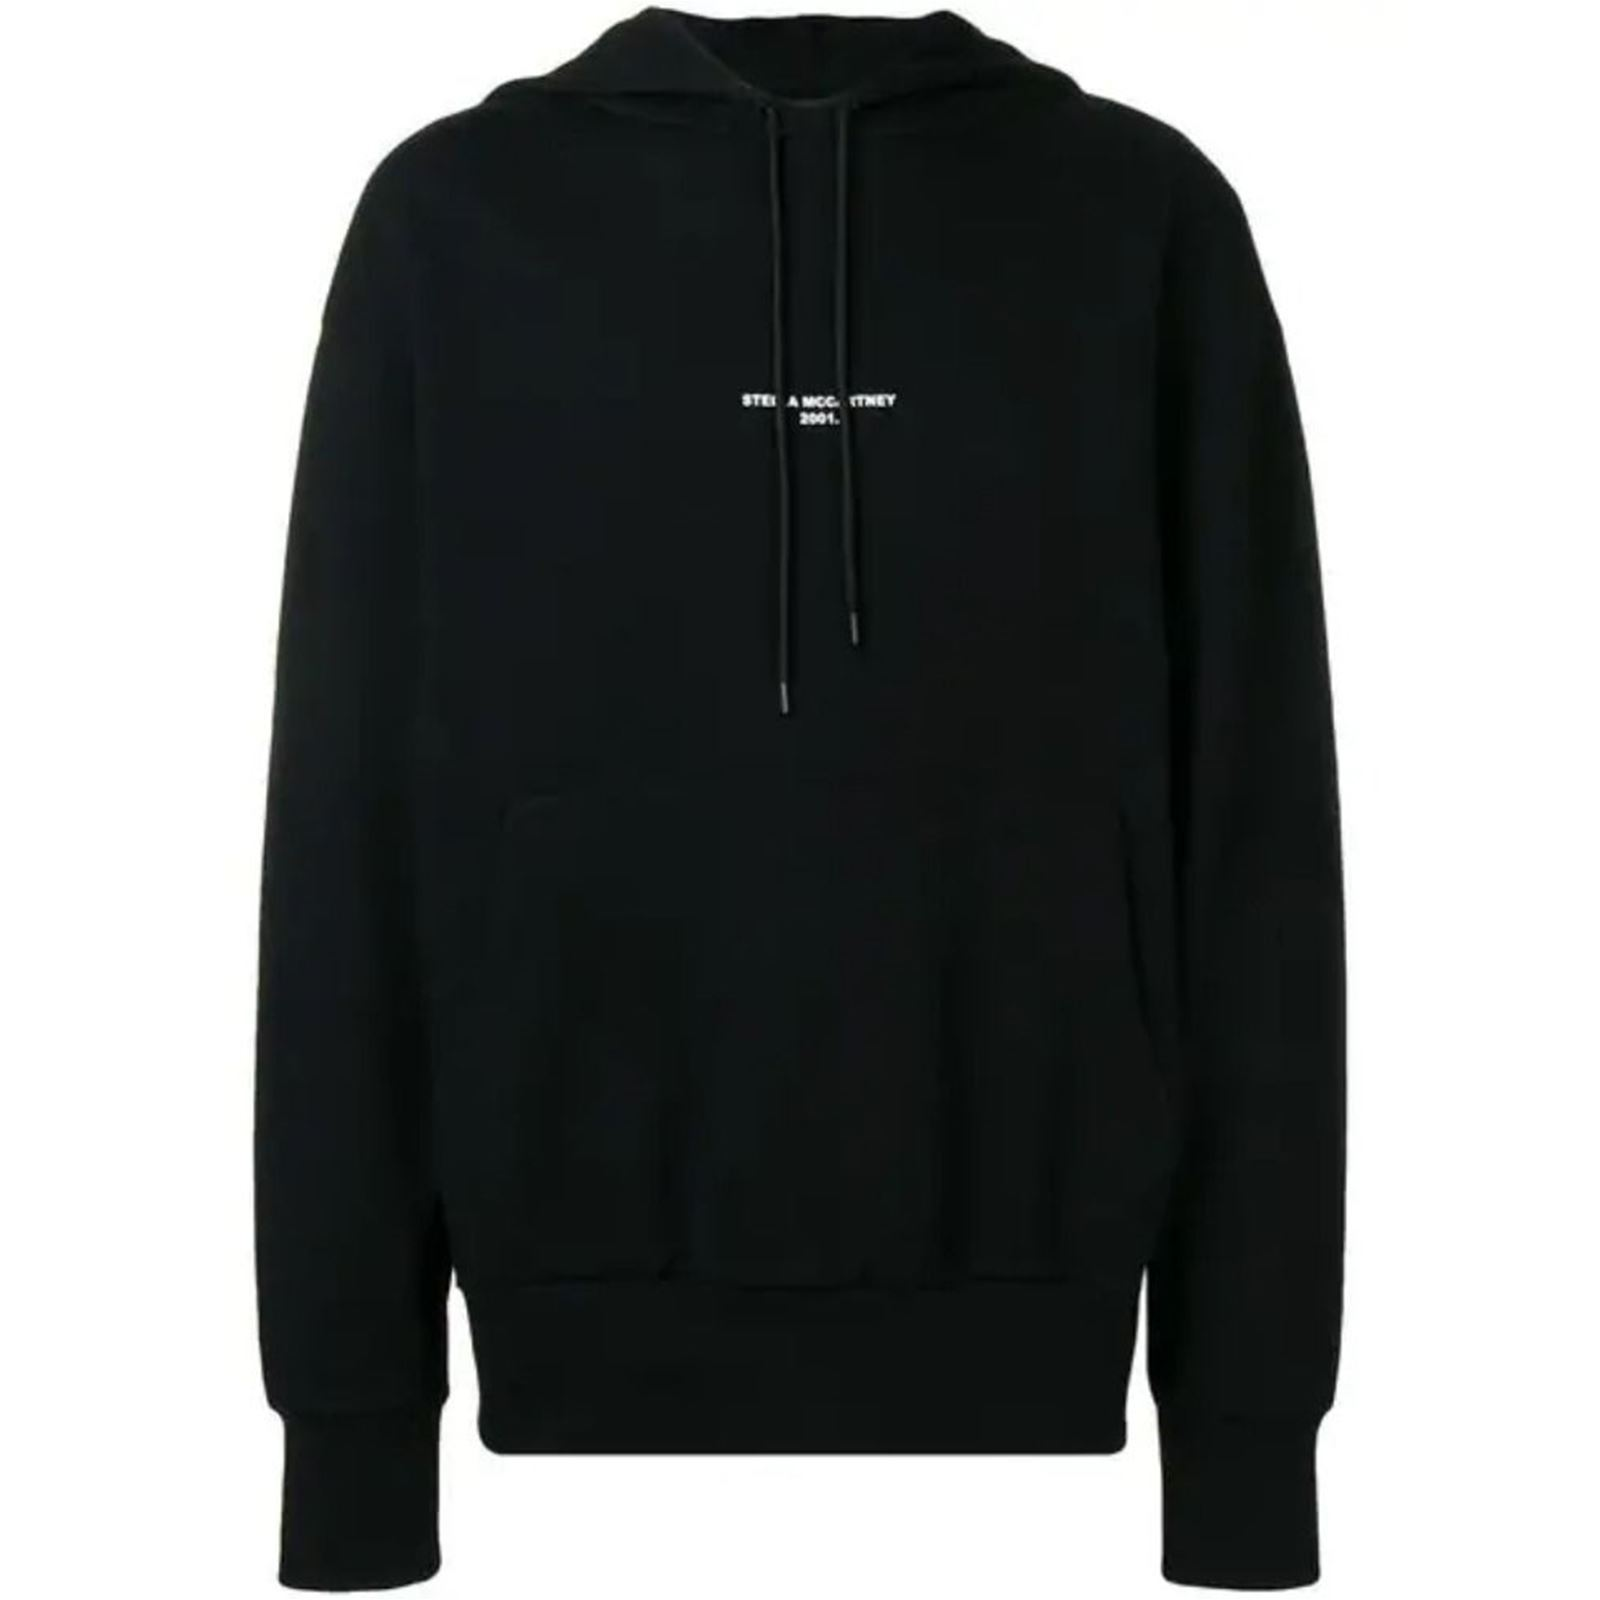 Homme V Stella Mccartney shirtNoir Sweat Iv7Ybf6gy